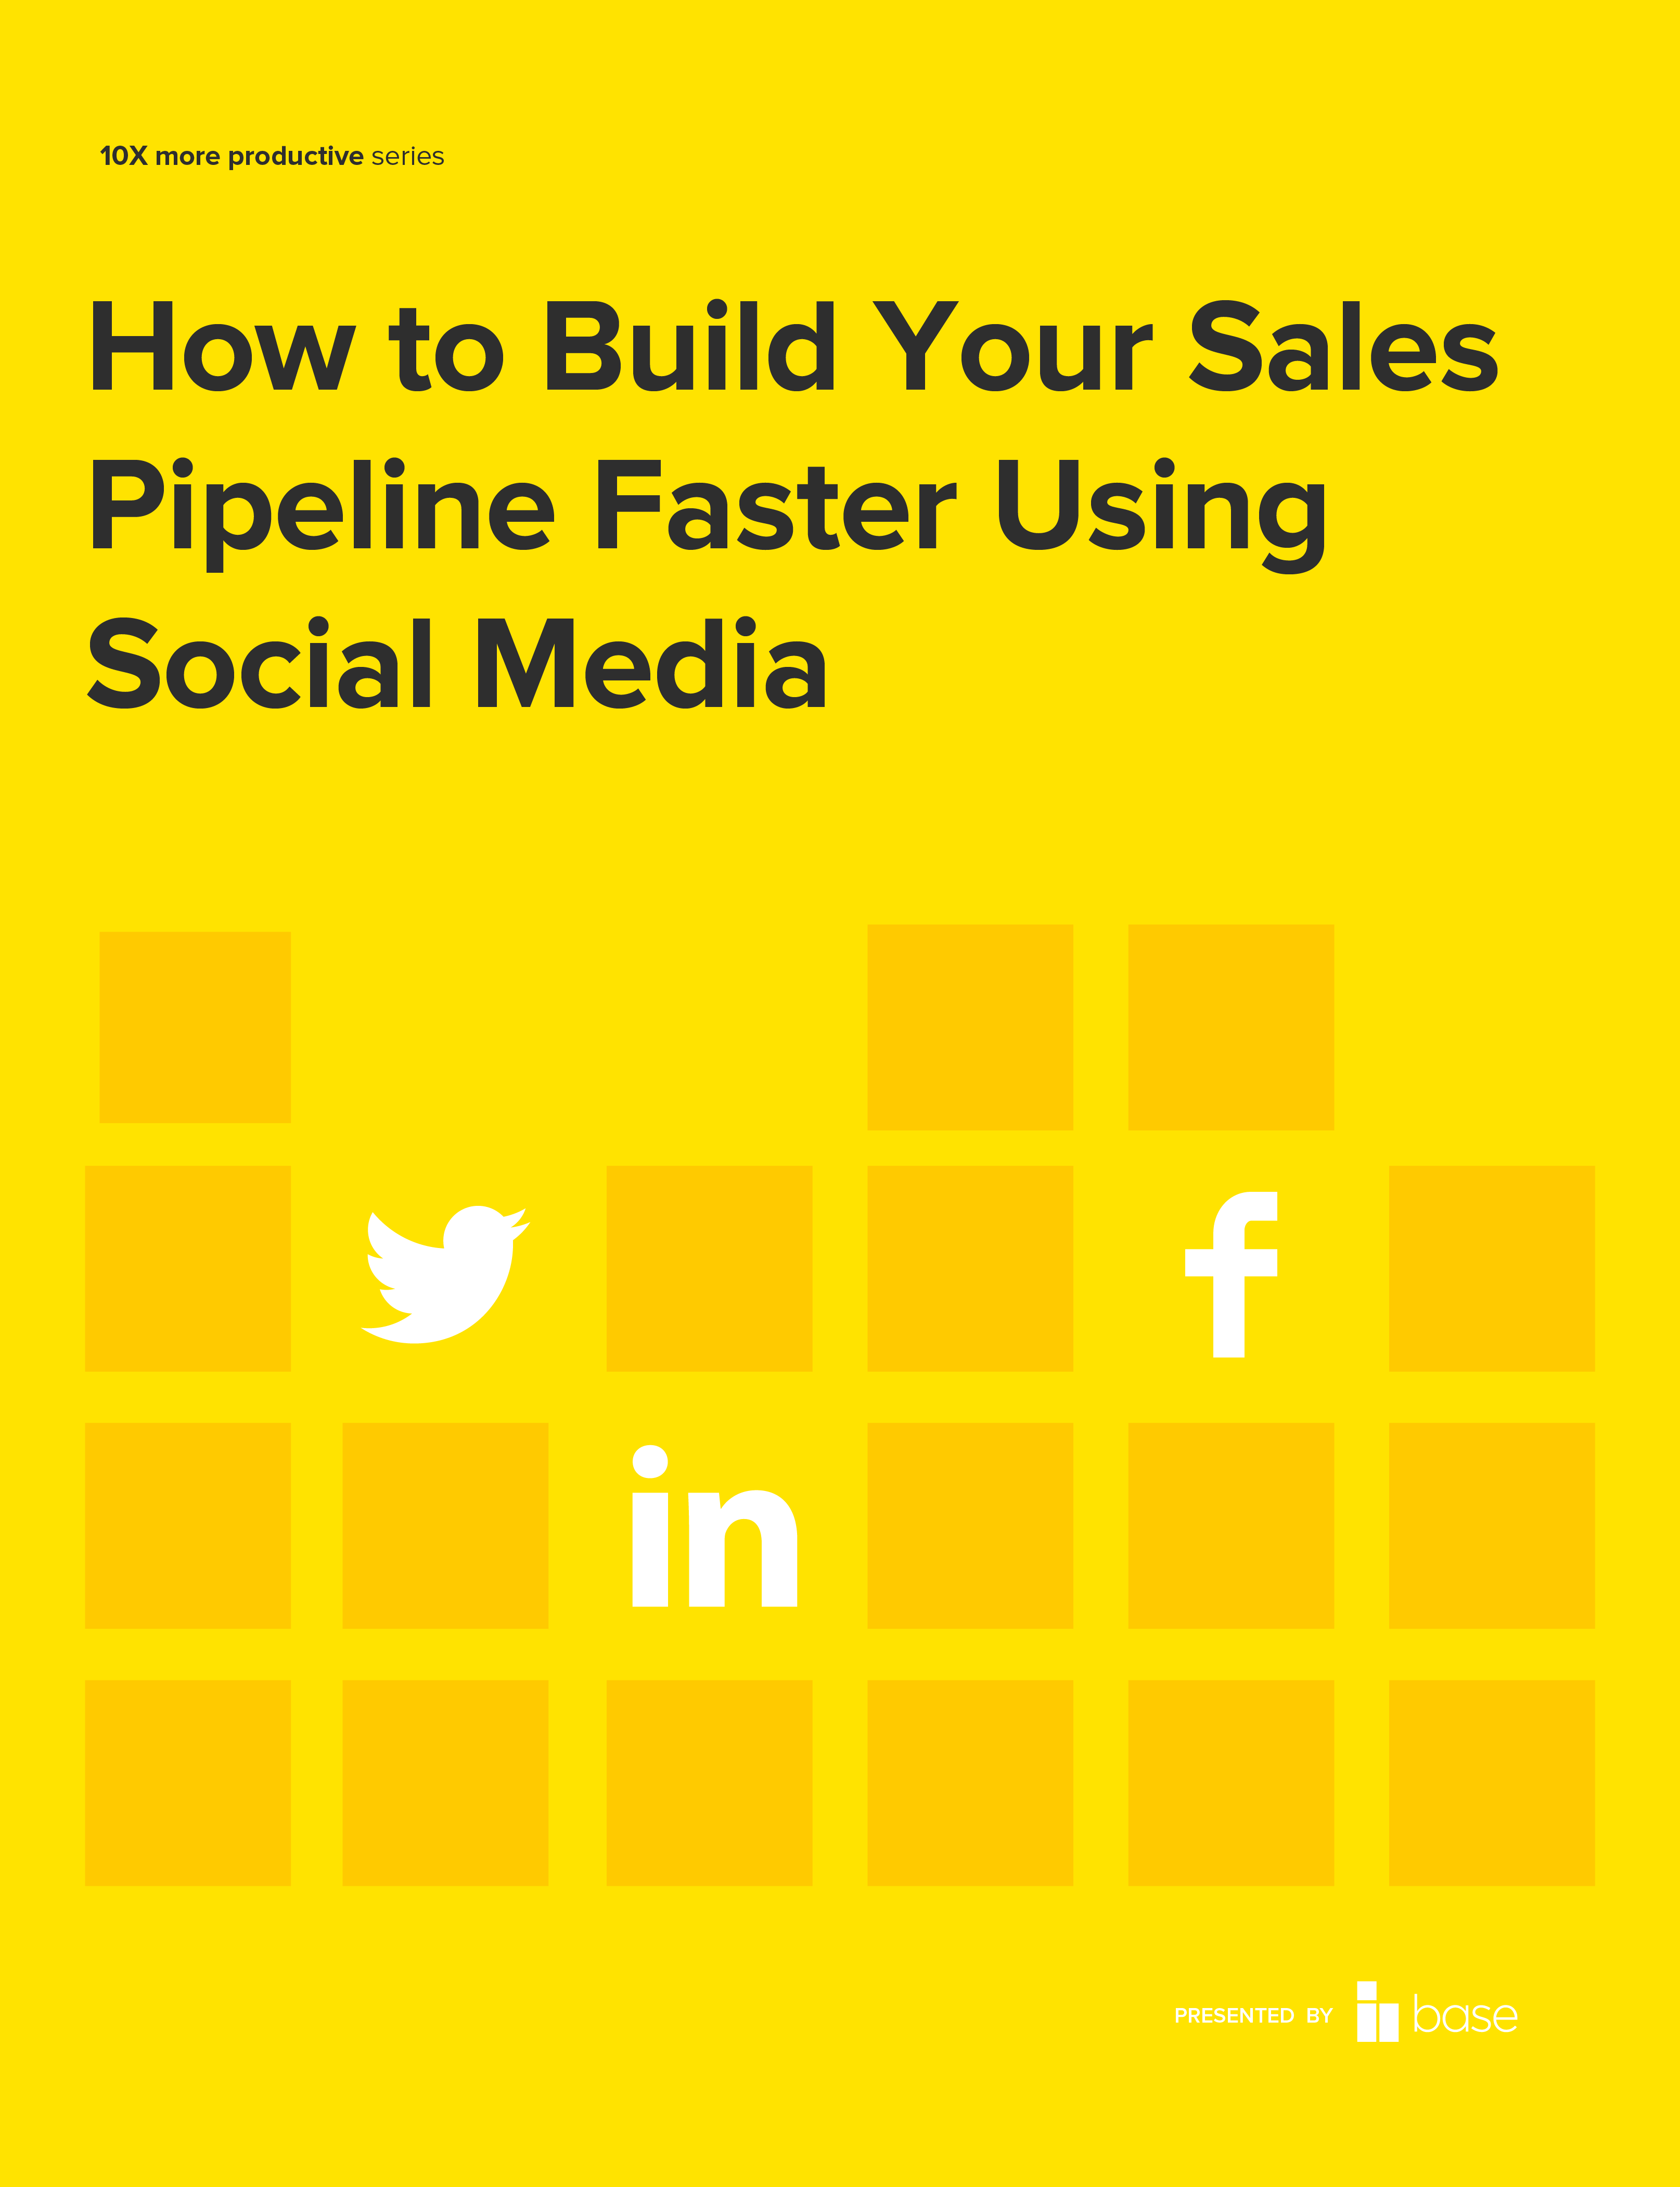 How_to_build_your_sales_pipeline_faster_using_social_media.png